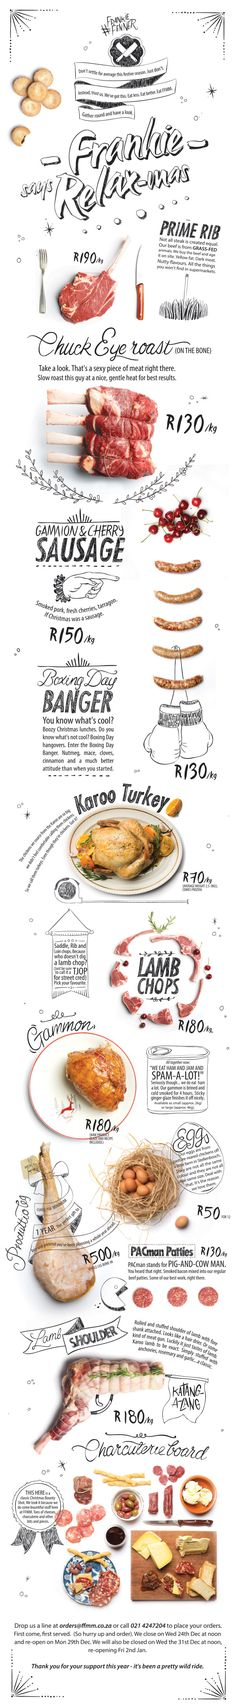 Unique Infographic Design, Frankie Says Relax-mas via @sabela2 #Infographic #Design #Christmas